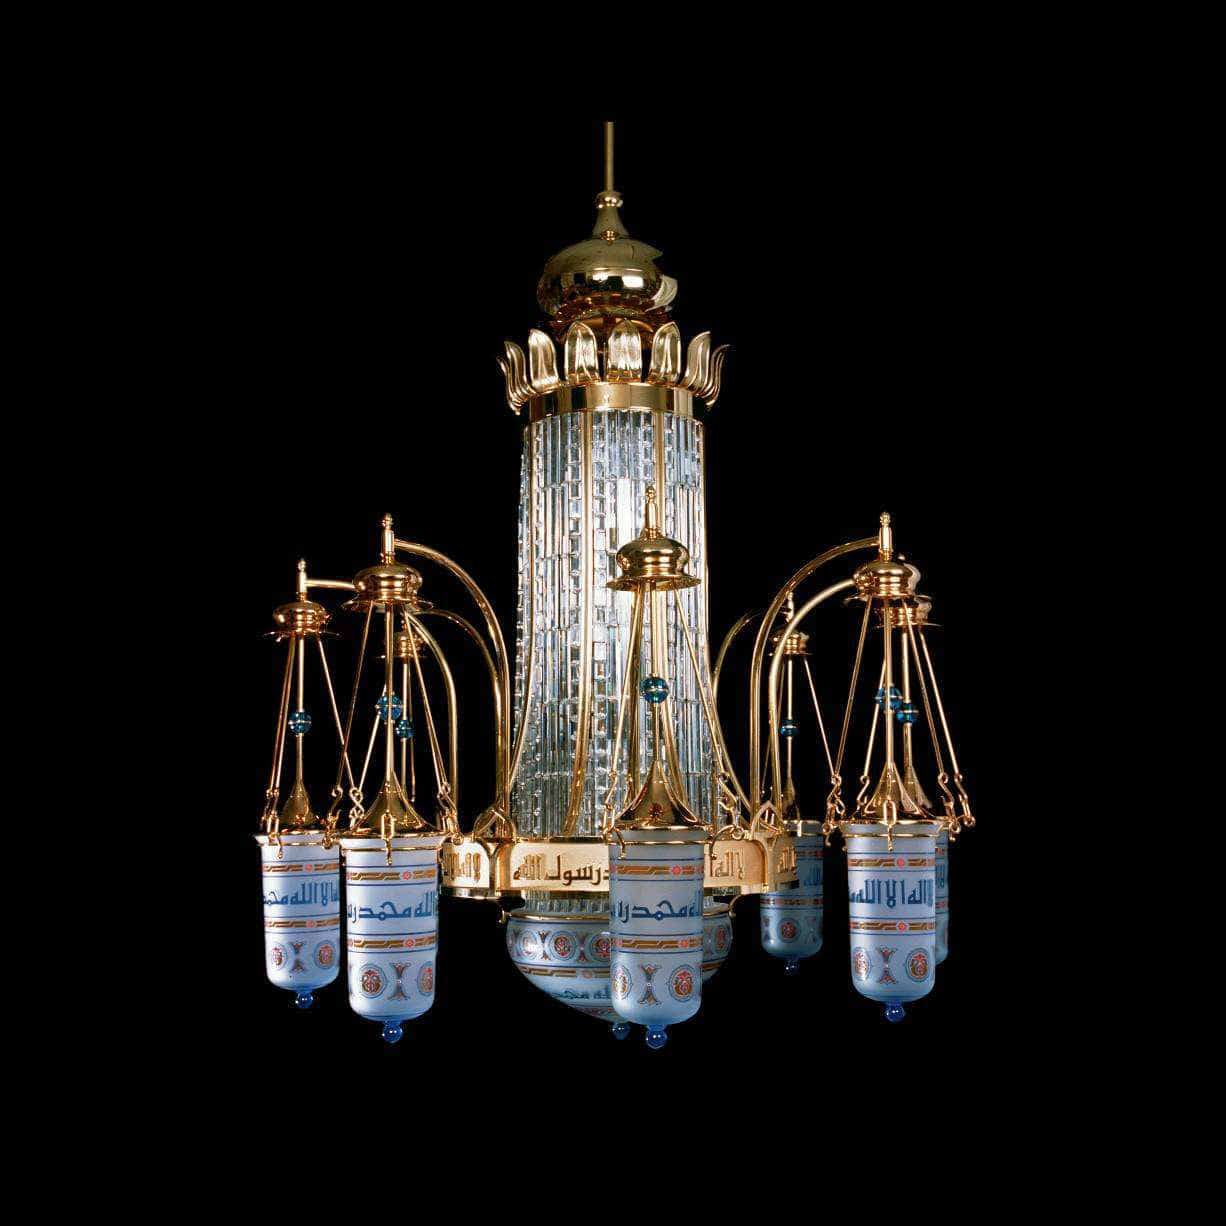 Traditional chandelier crystal brass incandescent medina old traditional chandelier crystal brass incandescent medina old mosque 41201 20 by peter rath aloadofball Image collections